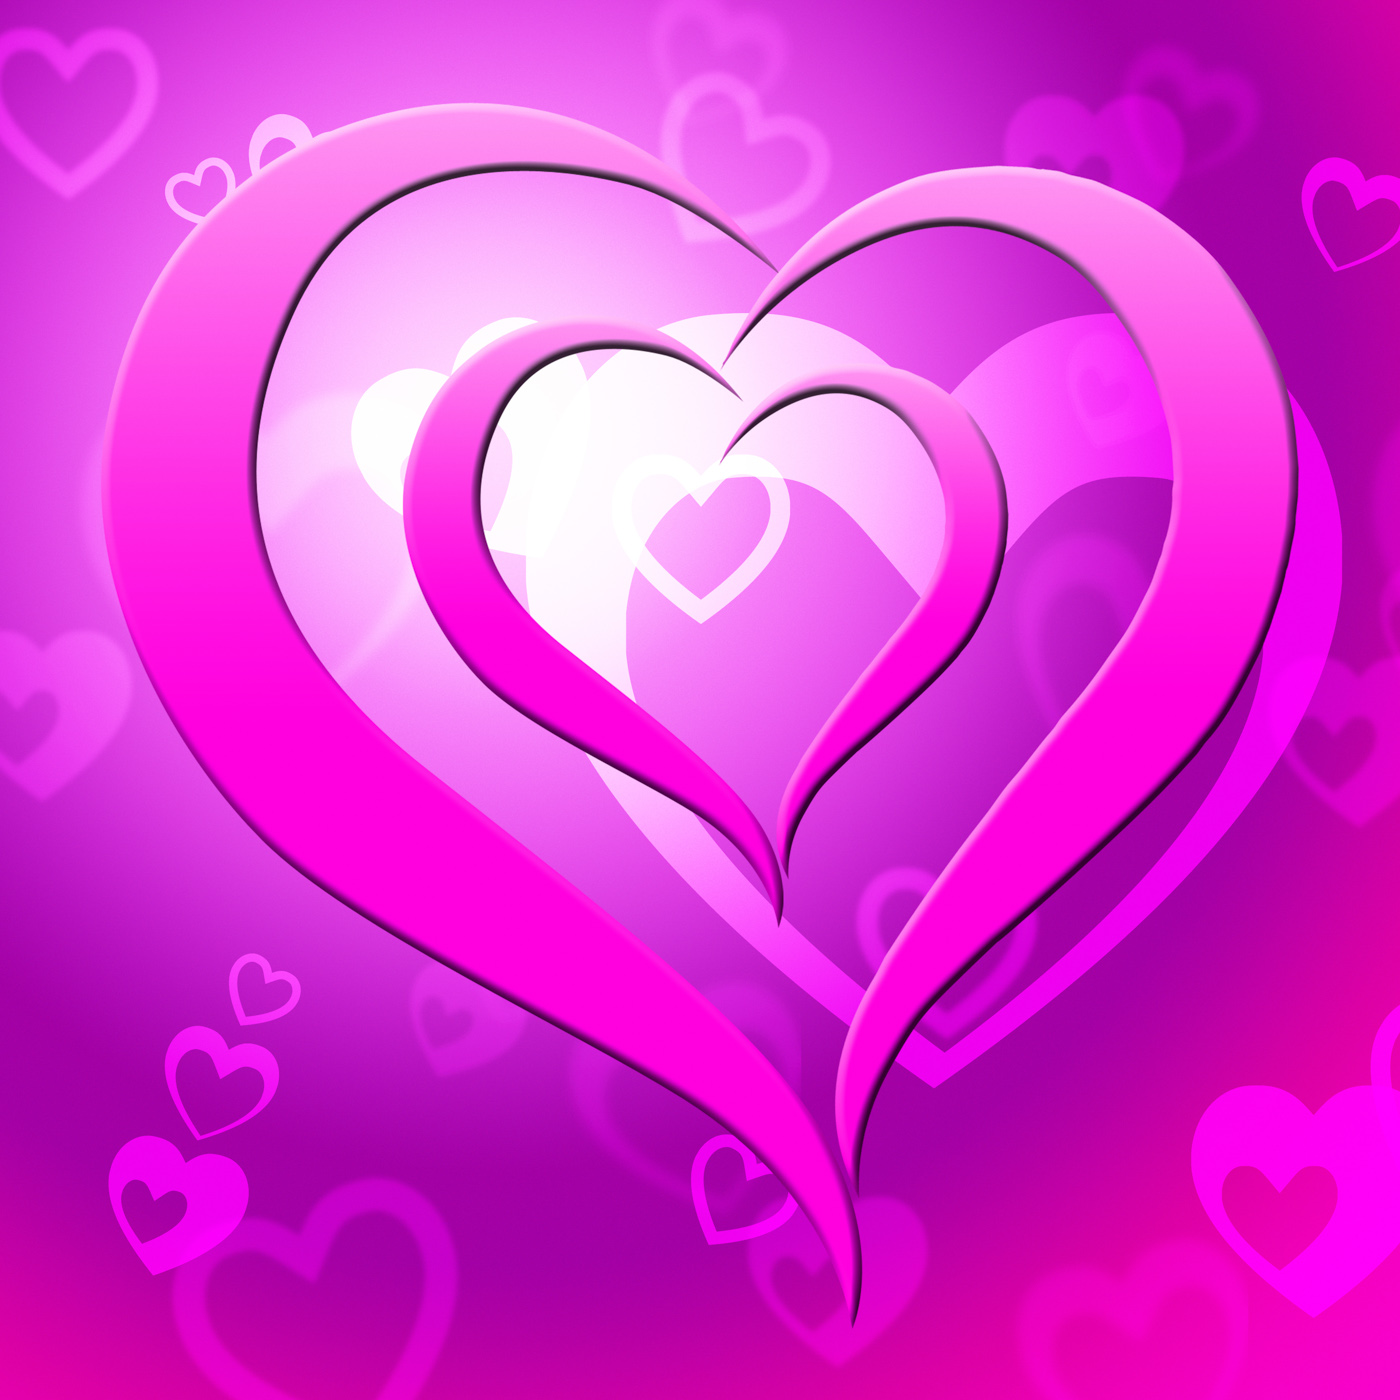 Background heart represents valentine day and affection photo